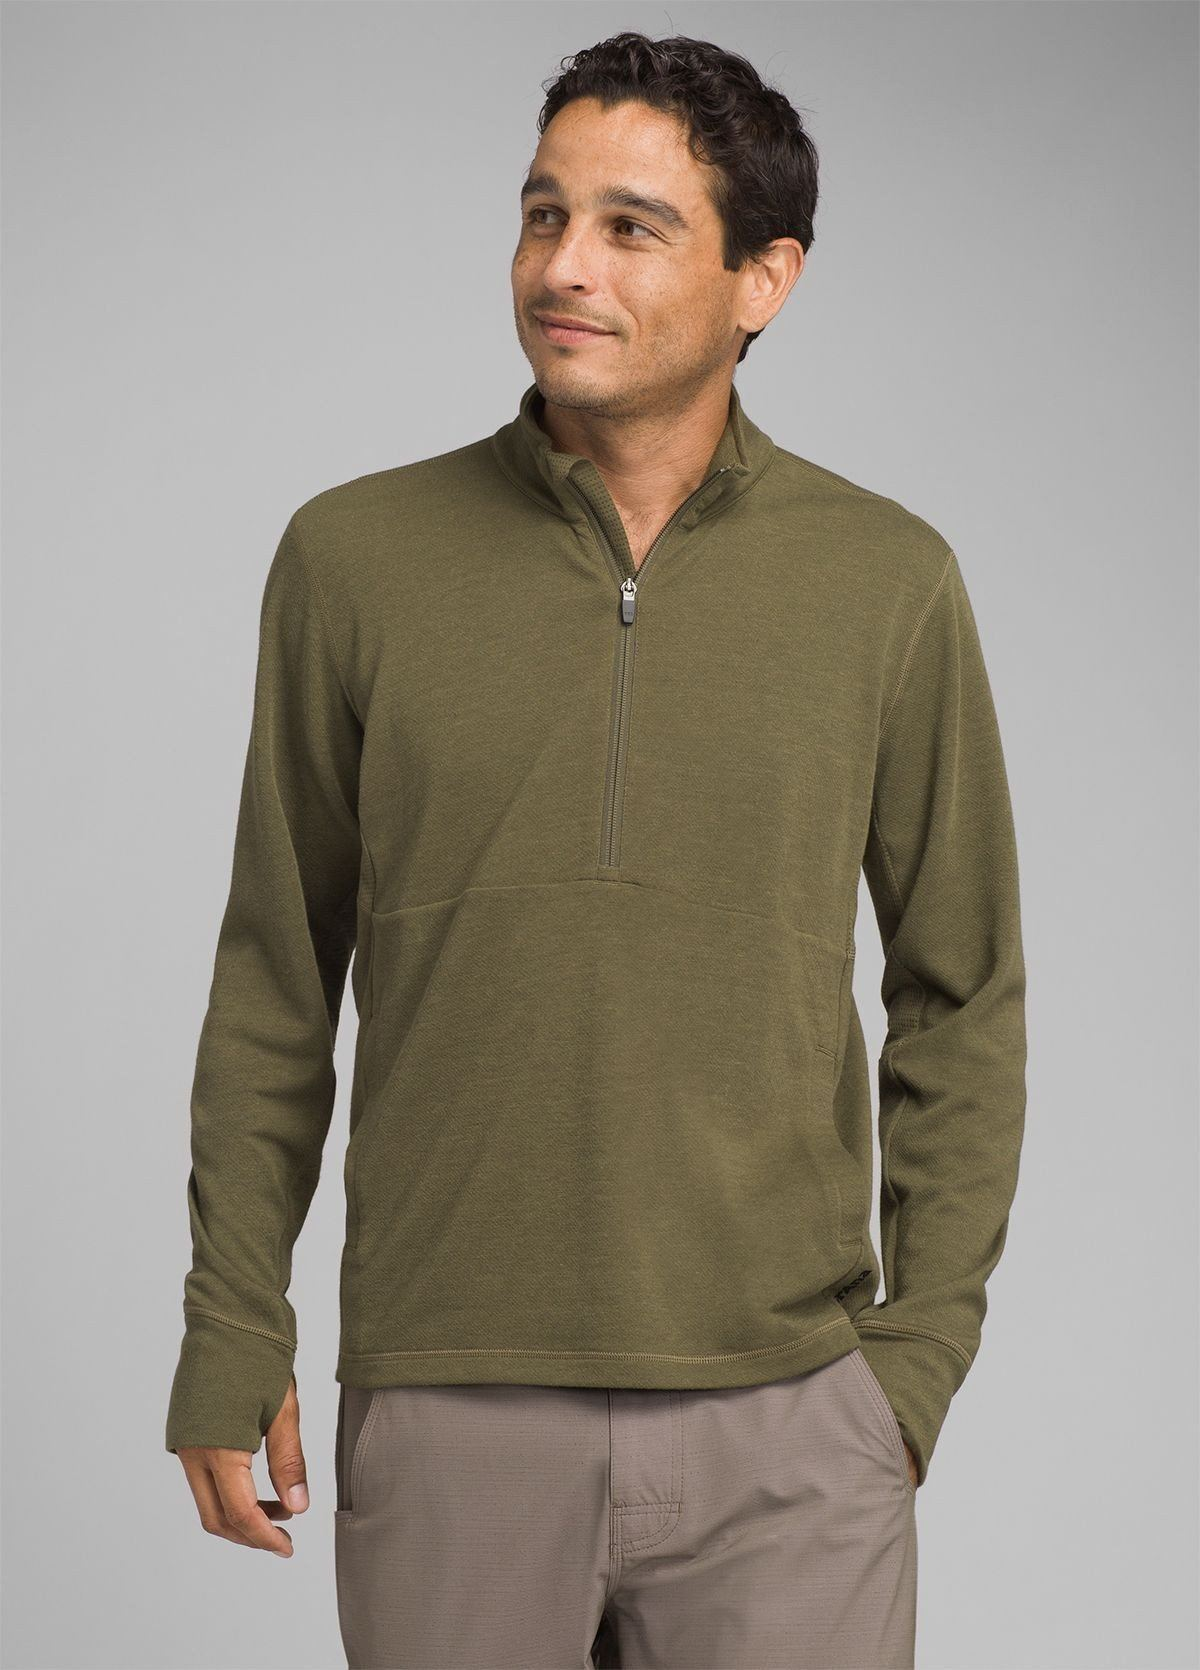 PrAna - Jarvis 1/2 Zip Sport Shirt - Recycled Material/Wool - Weekendbee - sustainable sportswear